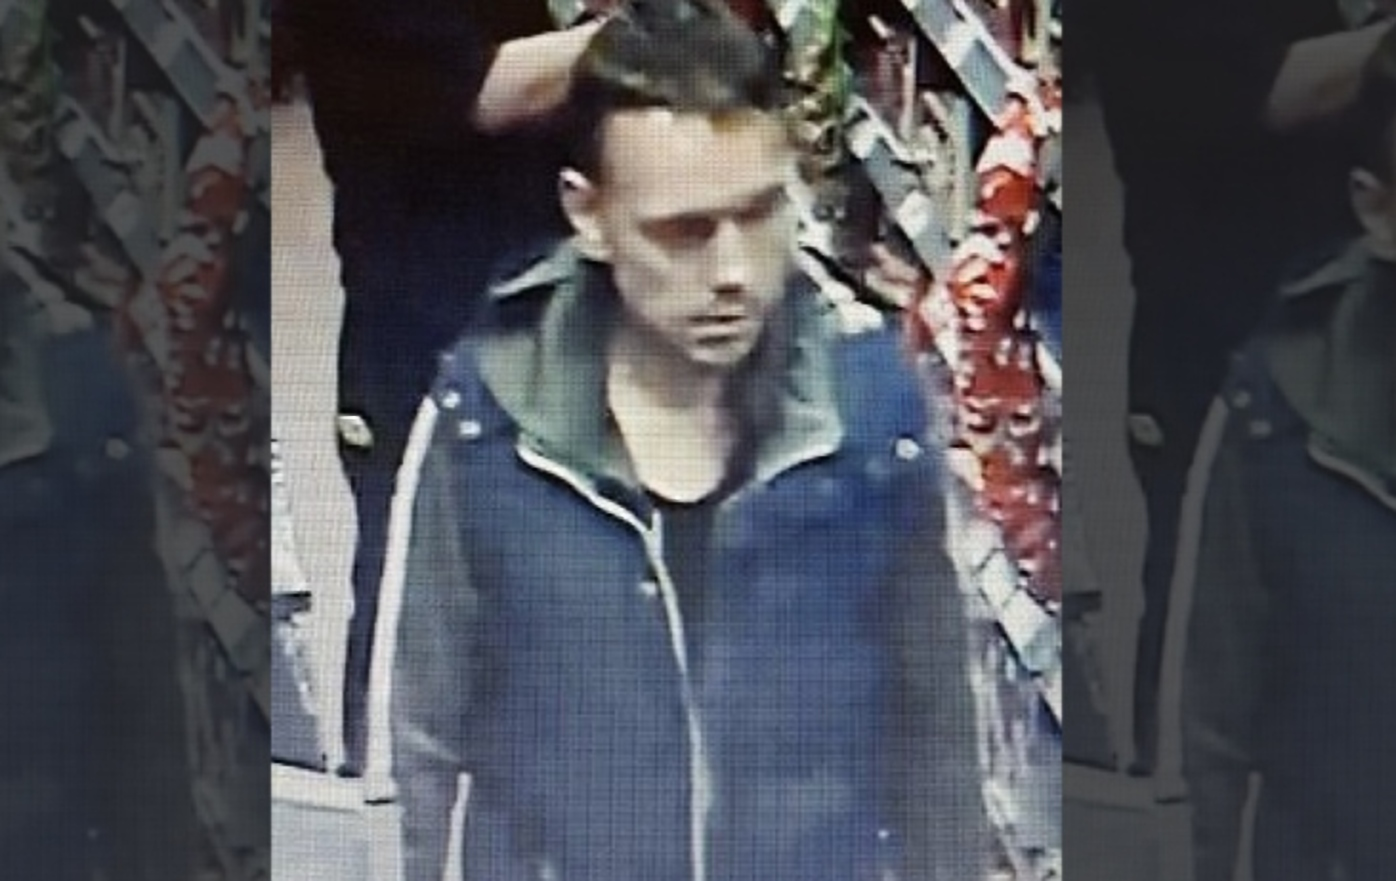 The suspect police what to speak to in connection with a case of shoplifting and criminal damage at the Co-Op store in Leeswood